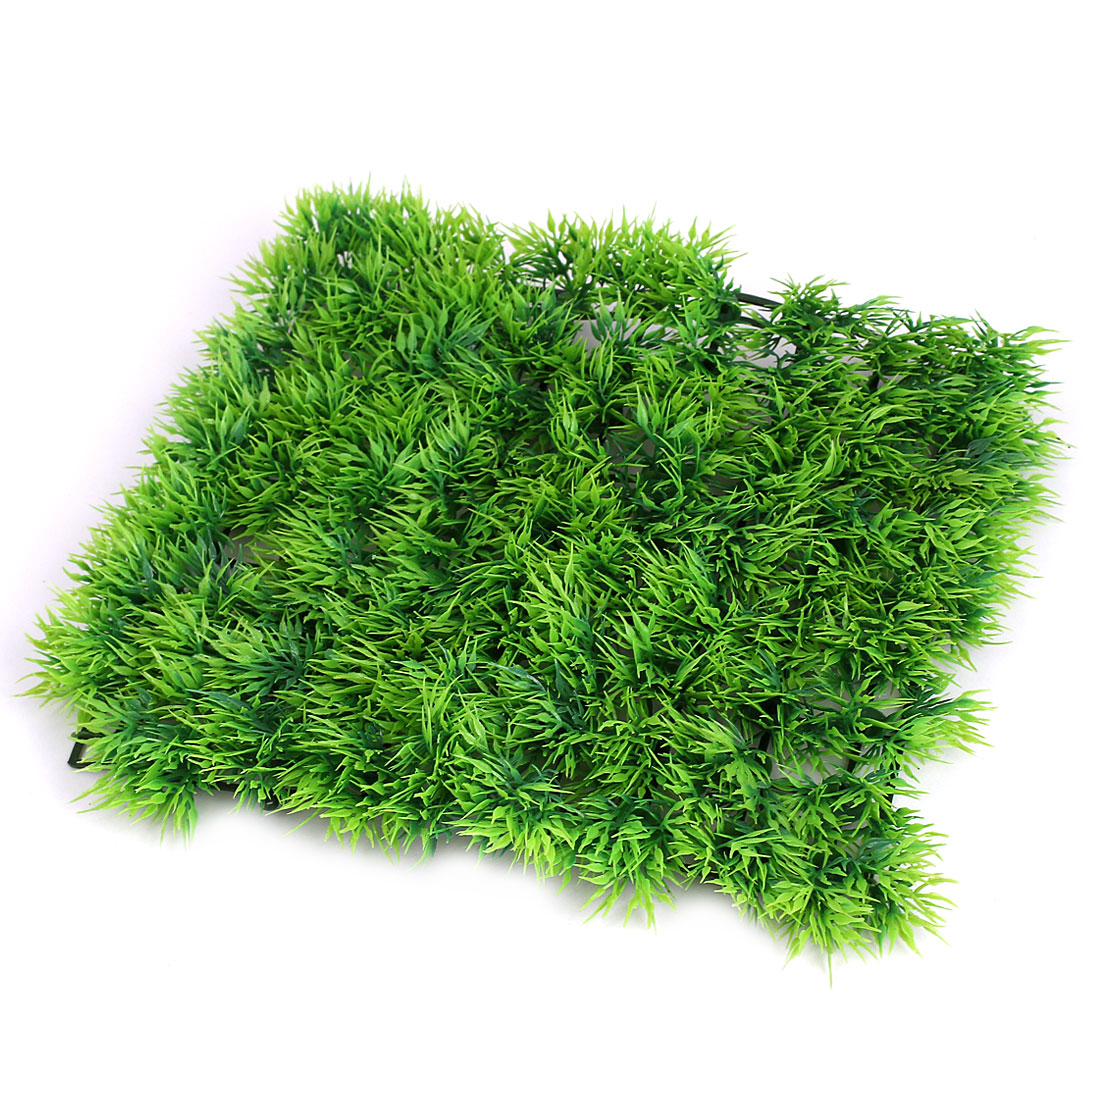 Aquarium Grass Artificial Plant Ornament Plastic Fish Tank Decoration